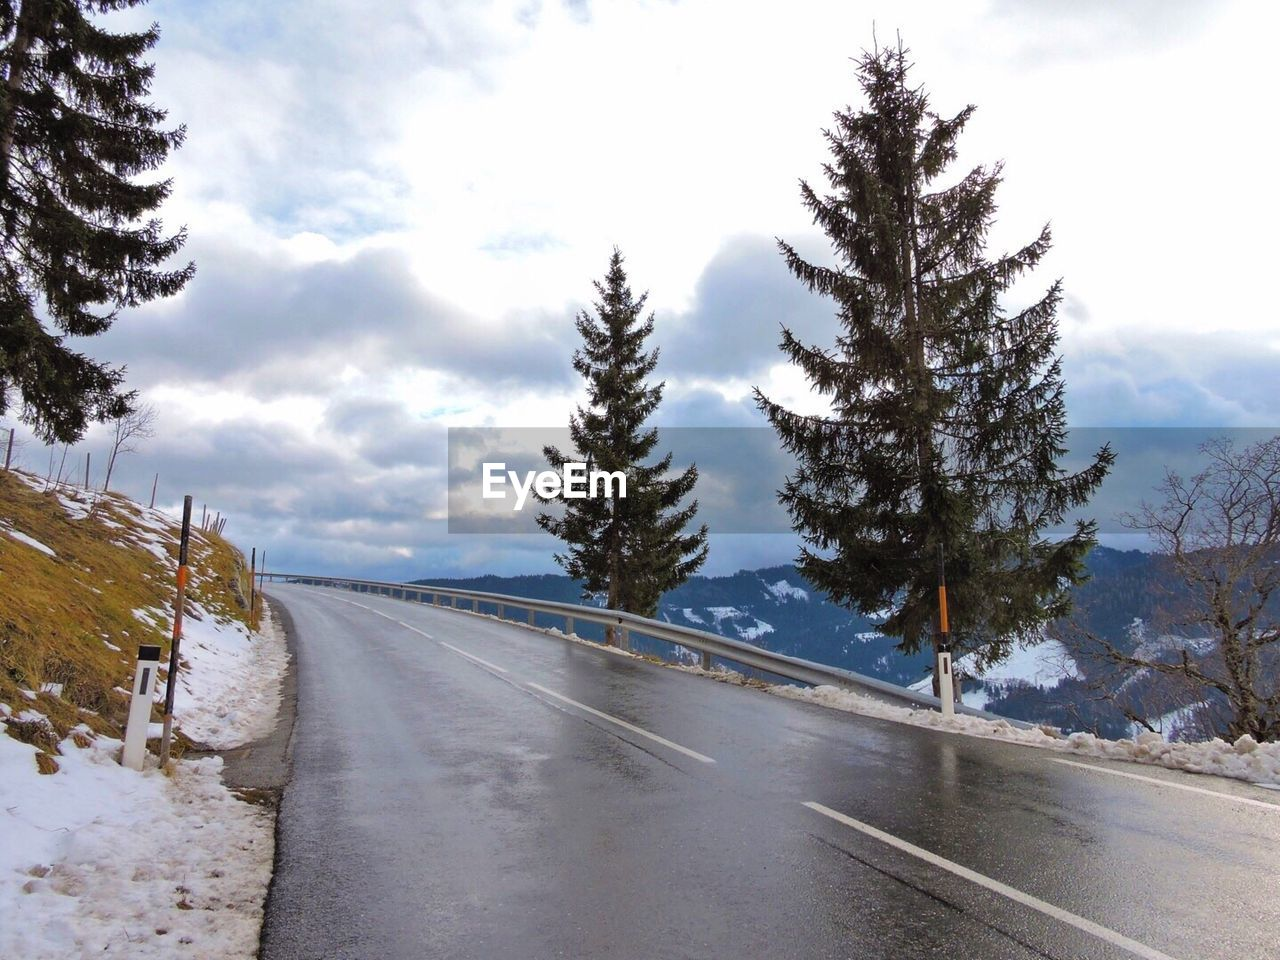 road, the way forward, snow, transportation, winter, nature, tree, diminishing perspective, sky, tranquil scene, scenics, cold temperature, landscape, no people, tranquility, outdoors, day, beauty in nature, winding road